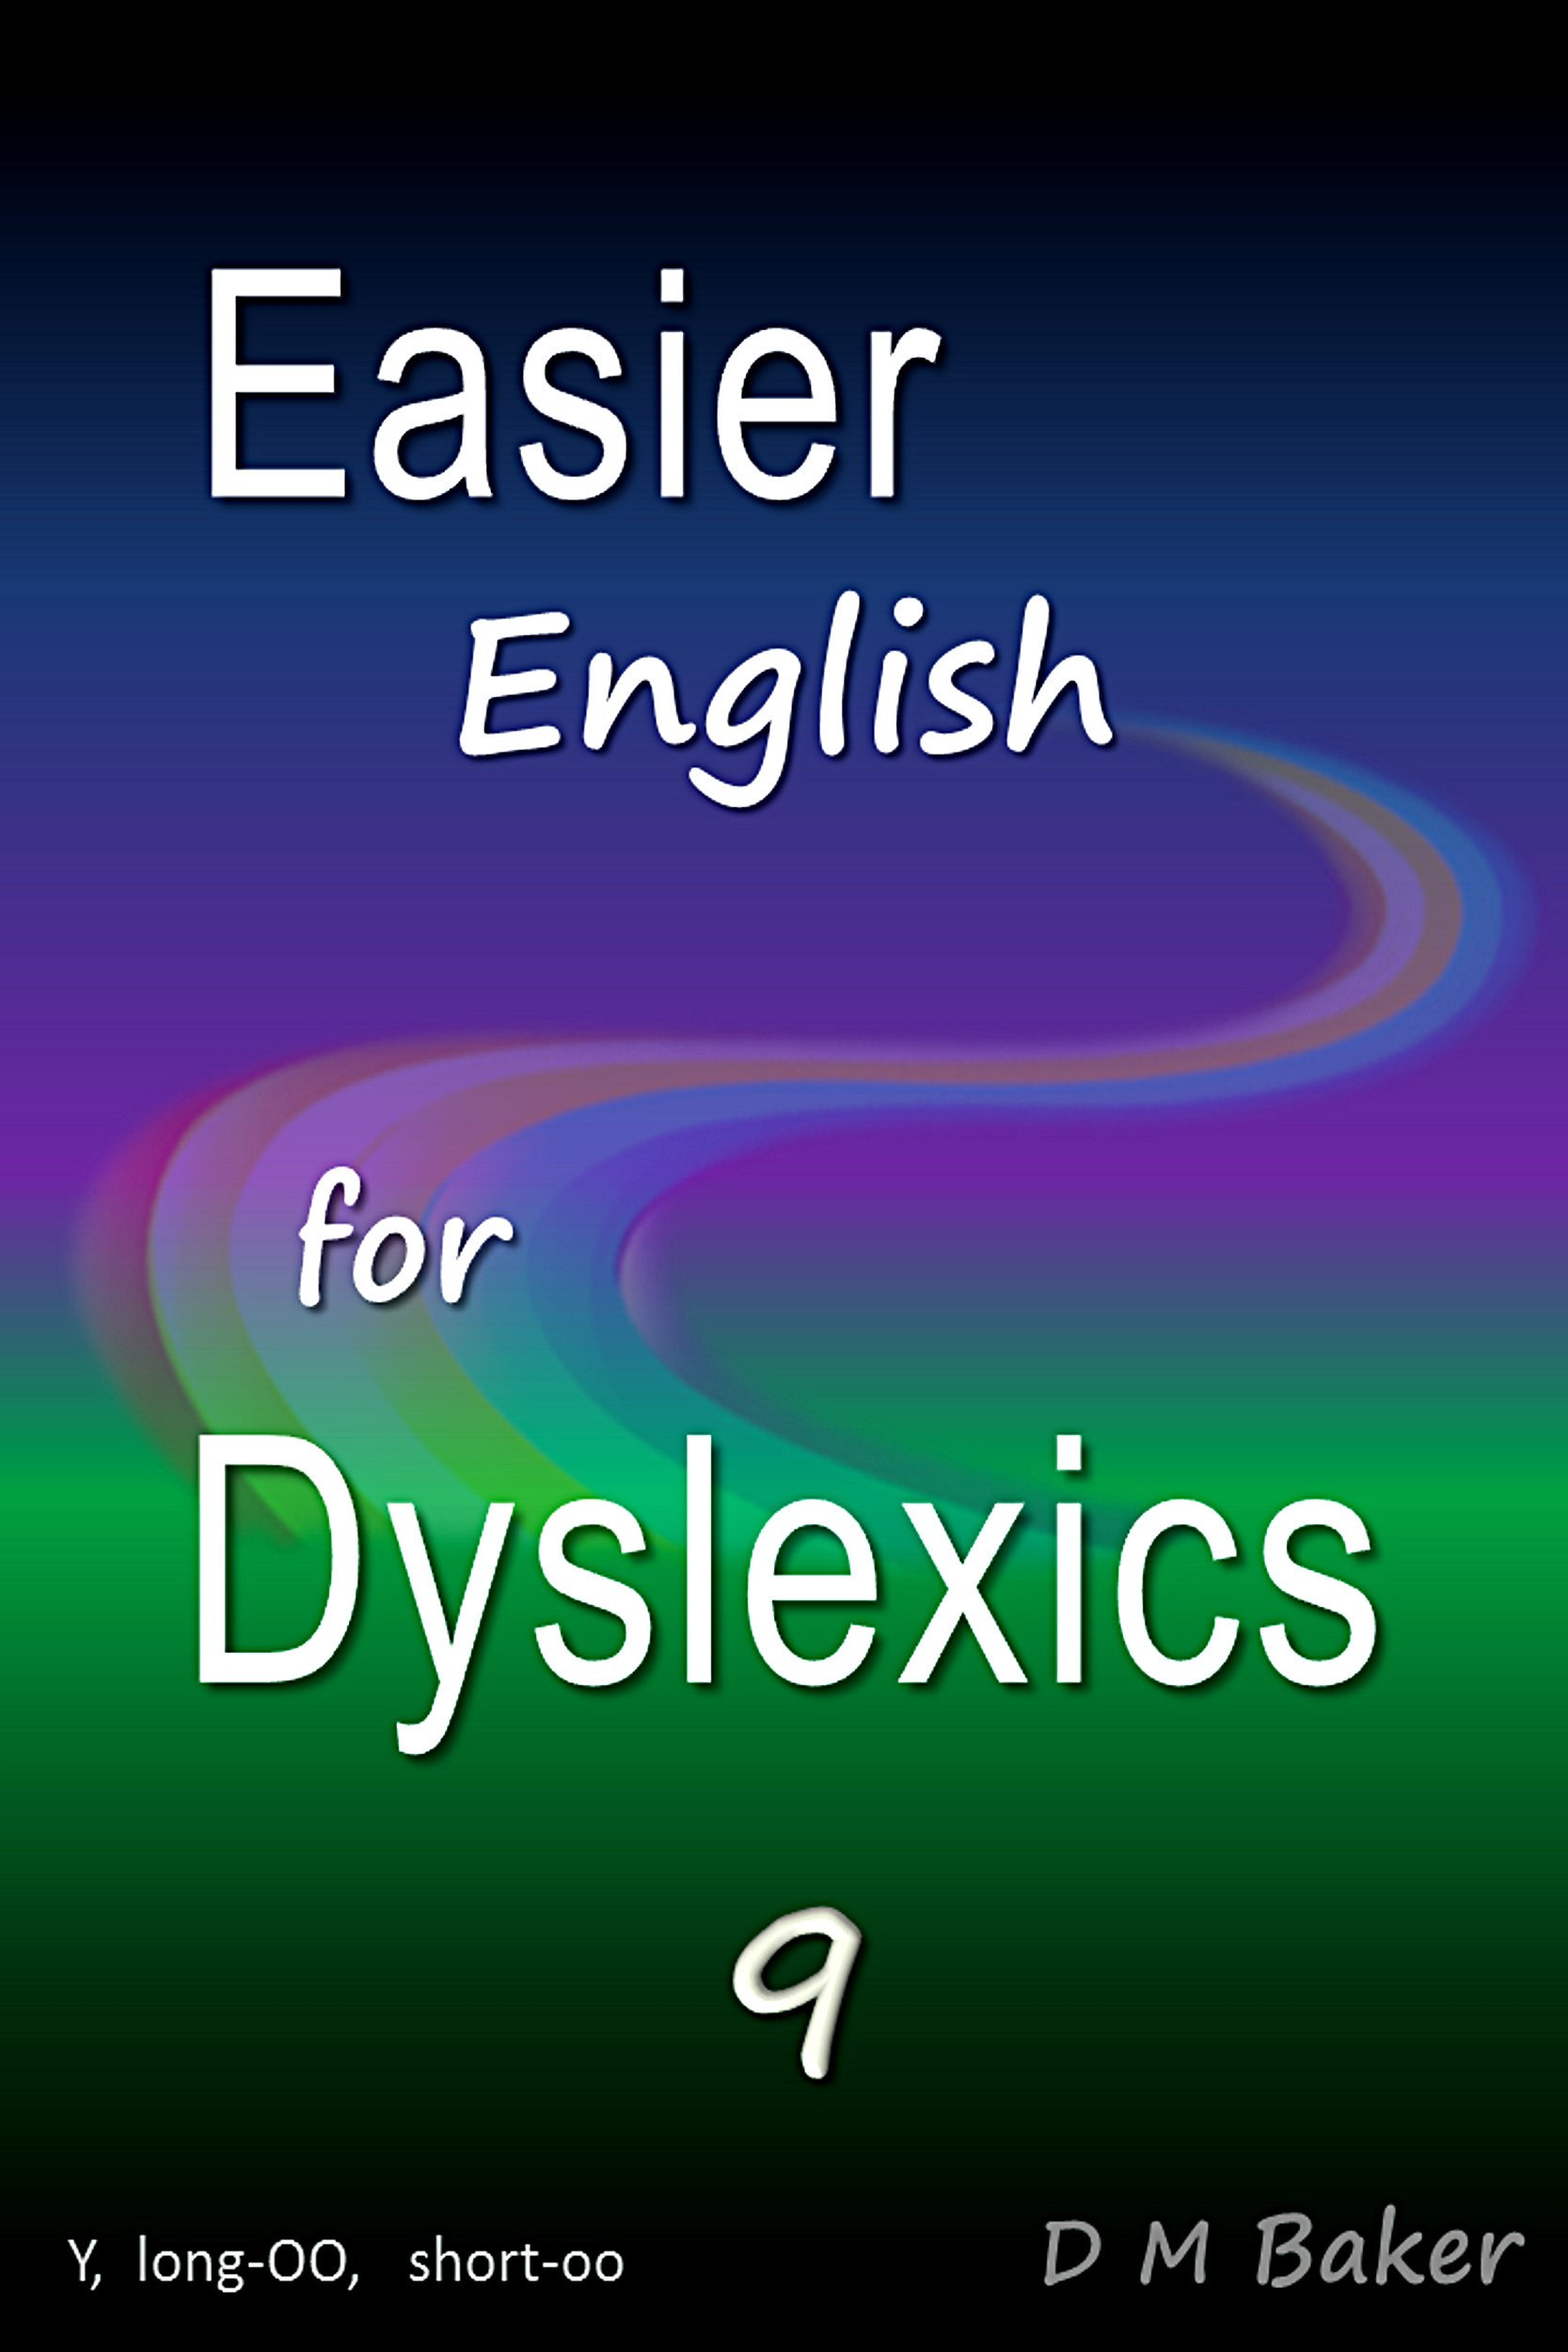 Easier English For Dyslexics 9  Y Long OO Short Oo  English Edition